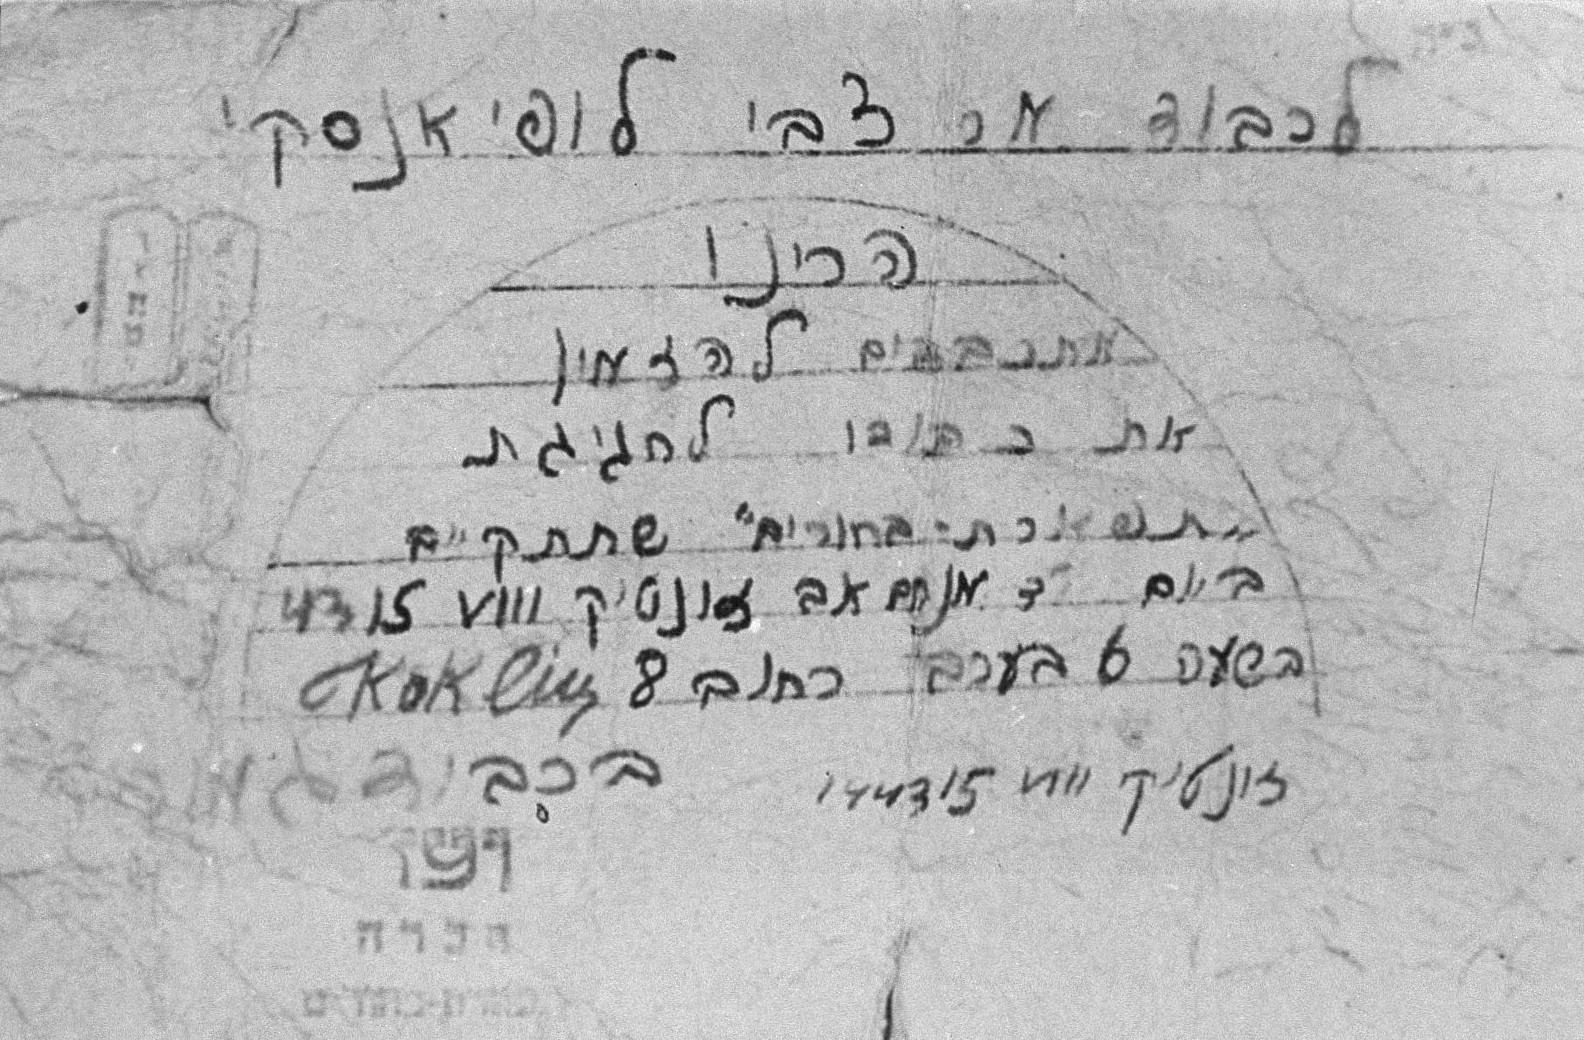 "Copy of an invitation to a celebration in the Kovno ghetto religious school on August 15, 1943.    It reads:  To Zvi Lopianski, You are cordially invited to a celebration of ""Tifferet Bachurim""  group on the fourth day of Av, Sunday, August 15, 1943, 6 p.m. Asat #8.  Respectfully, the Secretariat of (unreadable)  Tifferet Bachurim (literally the splendor of youth) was the name of the religious boys school in the ghetto. Rabbi Ephraim Oshry, head of the ghetto's delousing unit, instructed the boys in Talmud, prophets, law and ""musar"", spiritual self-improvement three to four hours a day.  Mr. Lopiansky, to whom the invitation is addressed, was a supporter of the school and responsible for safely hiding religious books and artifacts in his barn."